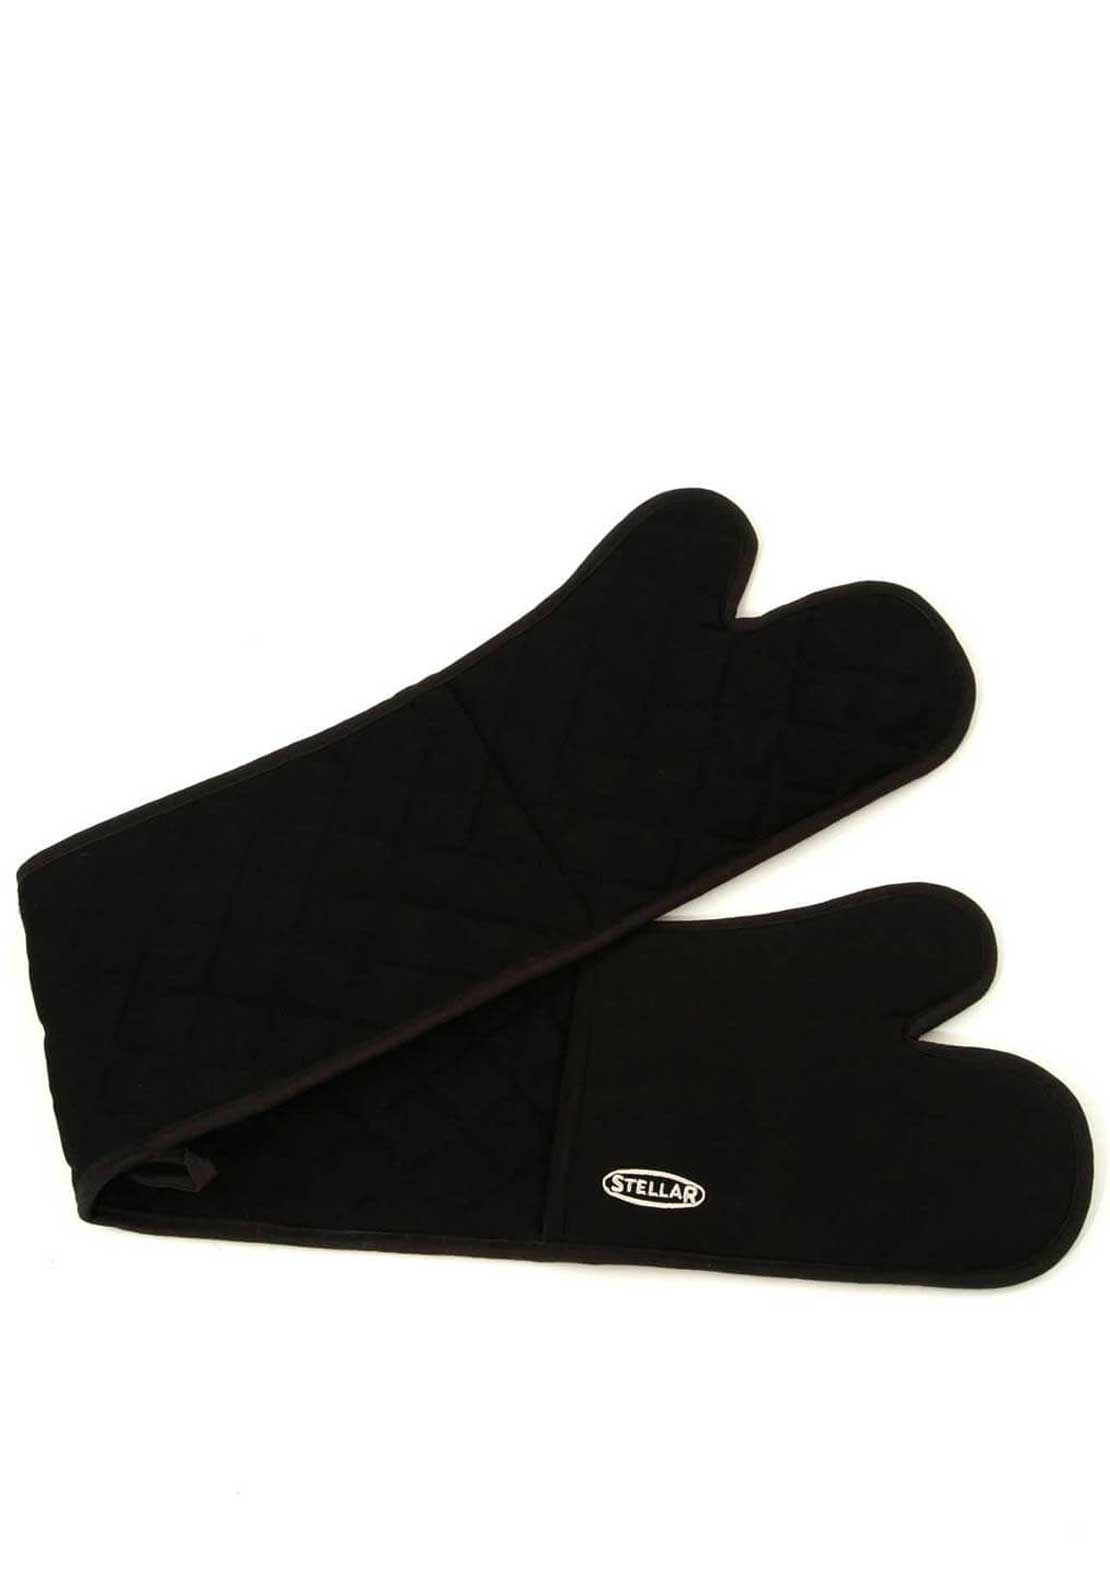 Stellar Thermal Resistant Double Oven Glove